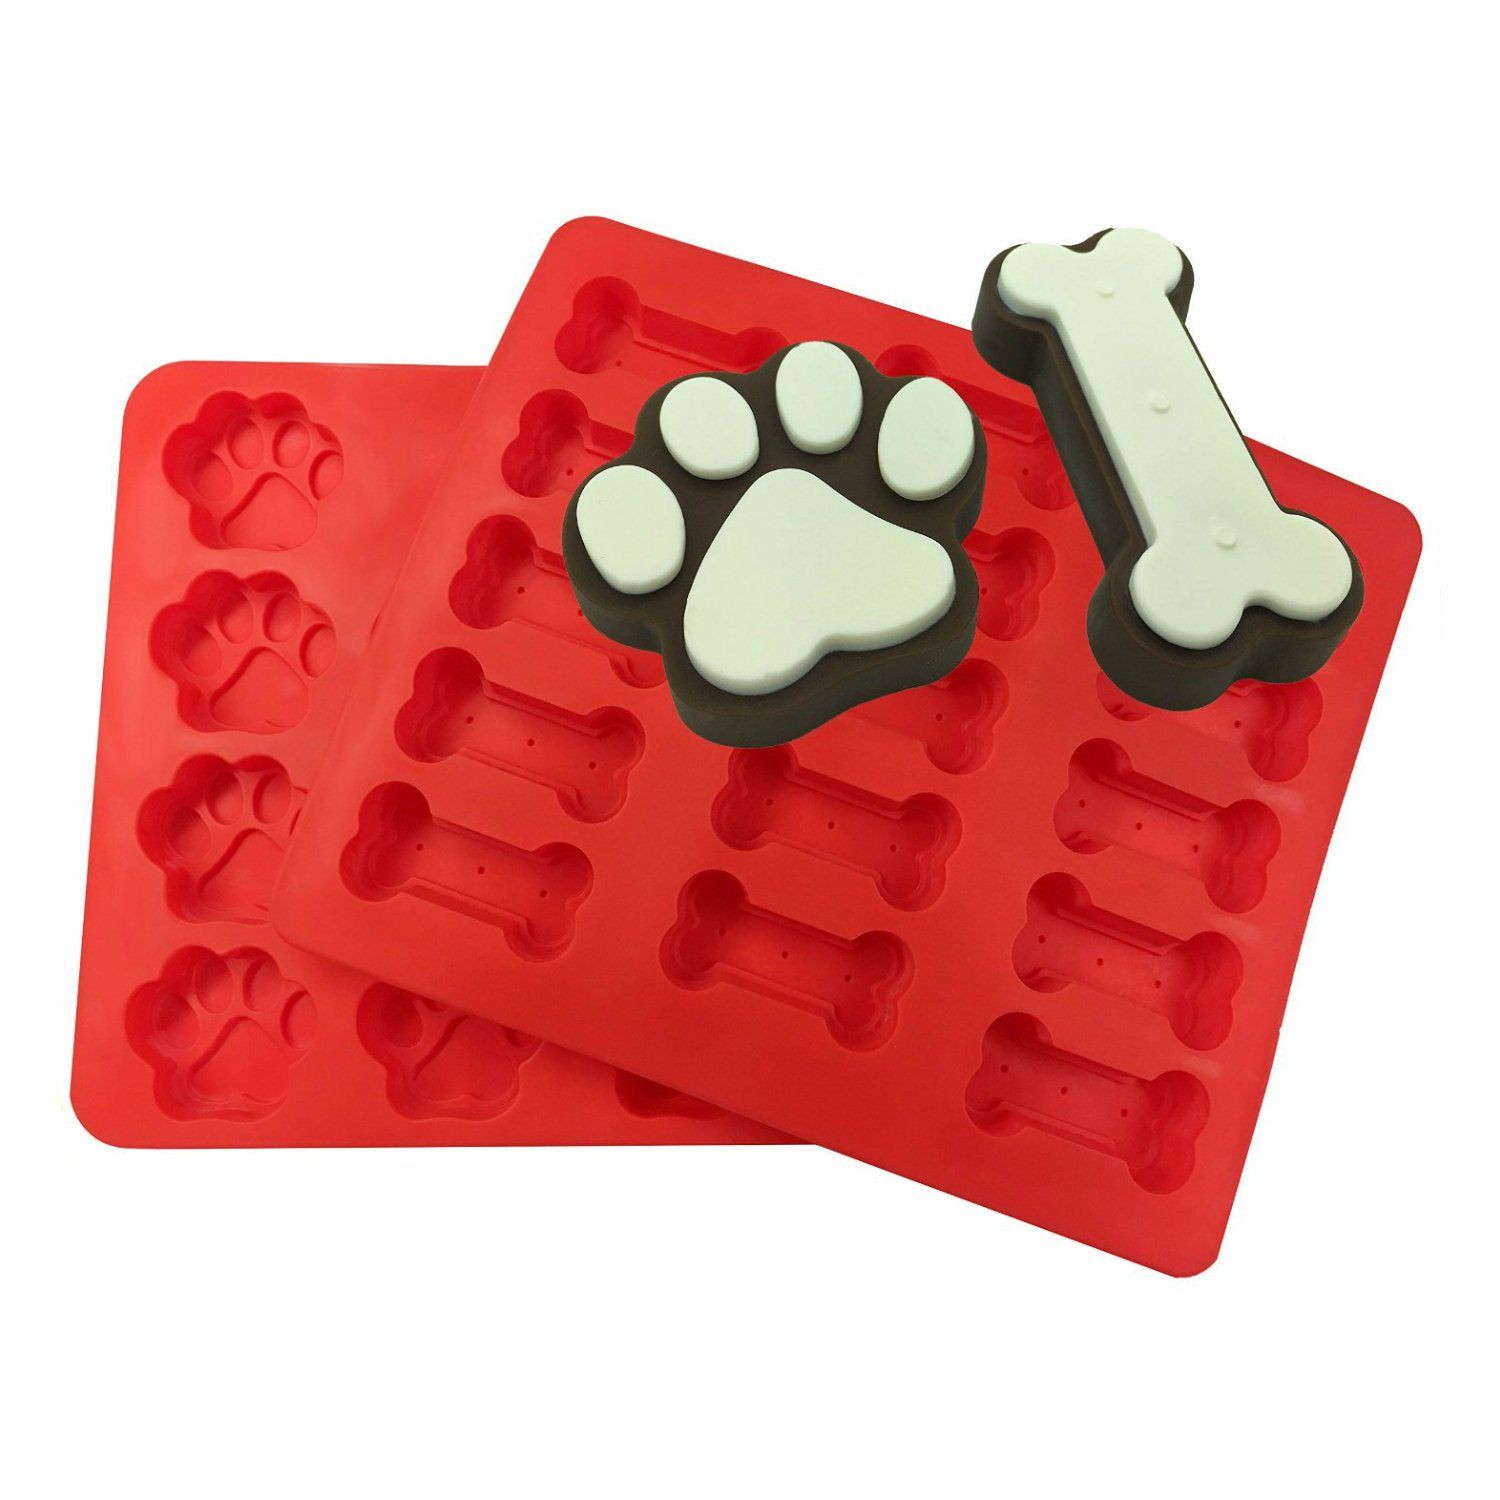 REXWAY 2 Pack Food Grade Dog Pet Bones & Paws Large Silicone Baking Molds, Homemade Dog Treats, Chocolates, Cakes, Cookies and Ice Cubes for Pets, Kids and Dog-lovers